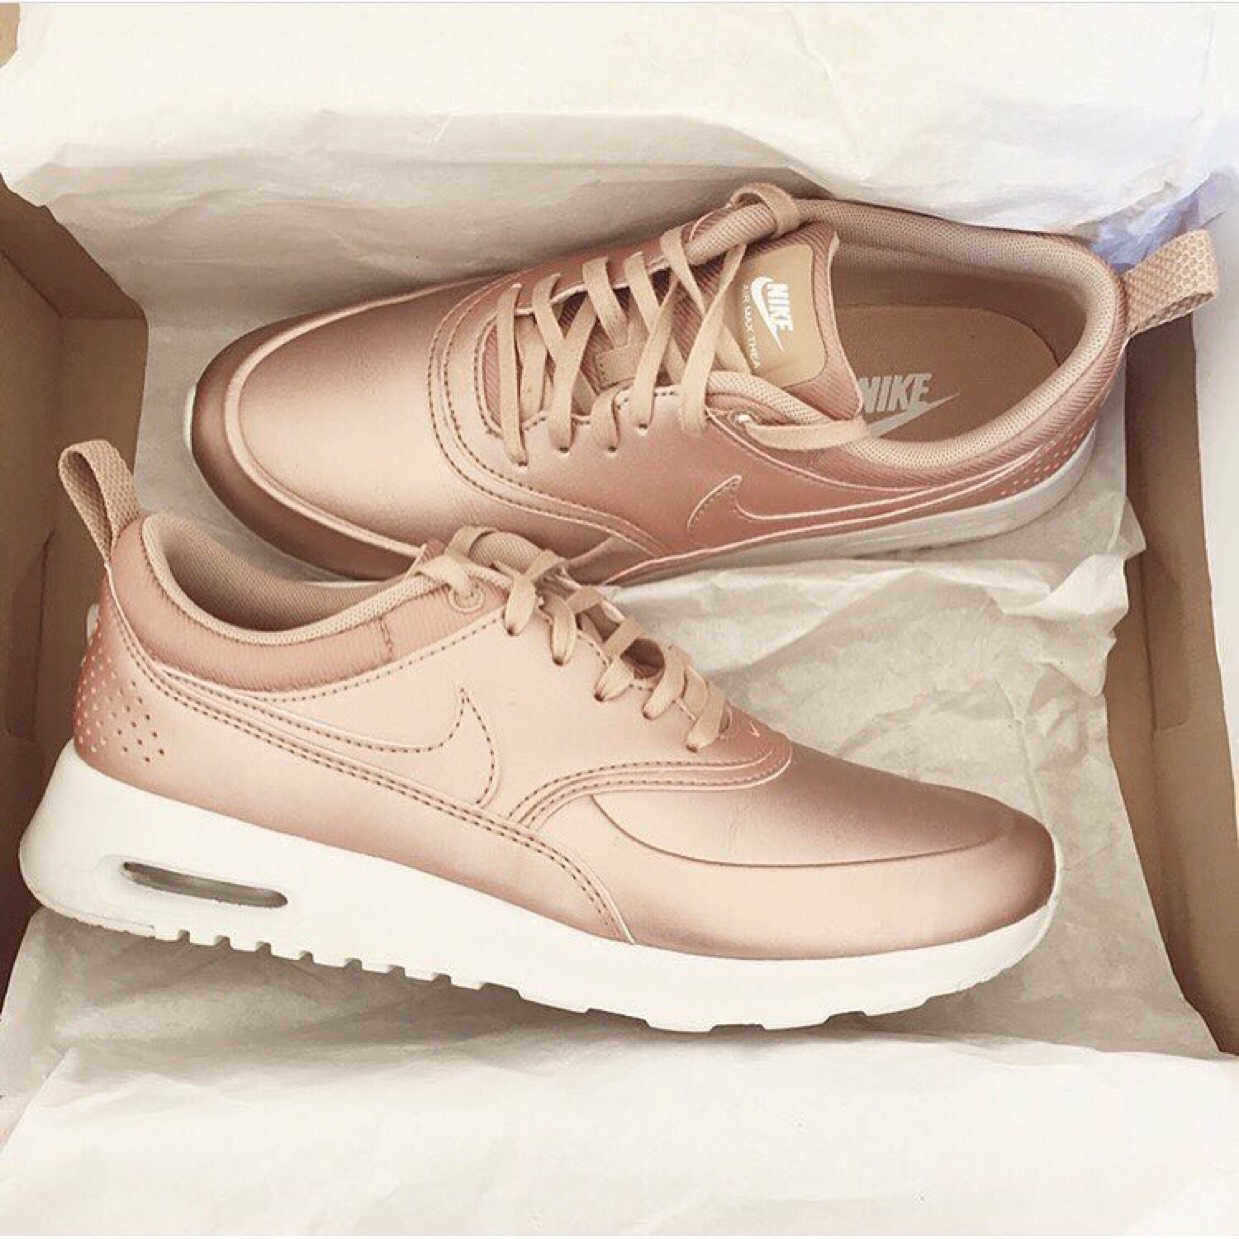 9402eadae7b Jiaminnie has gotten nike air max thea in rose gold from Japan!